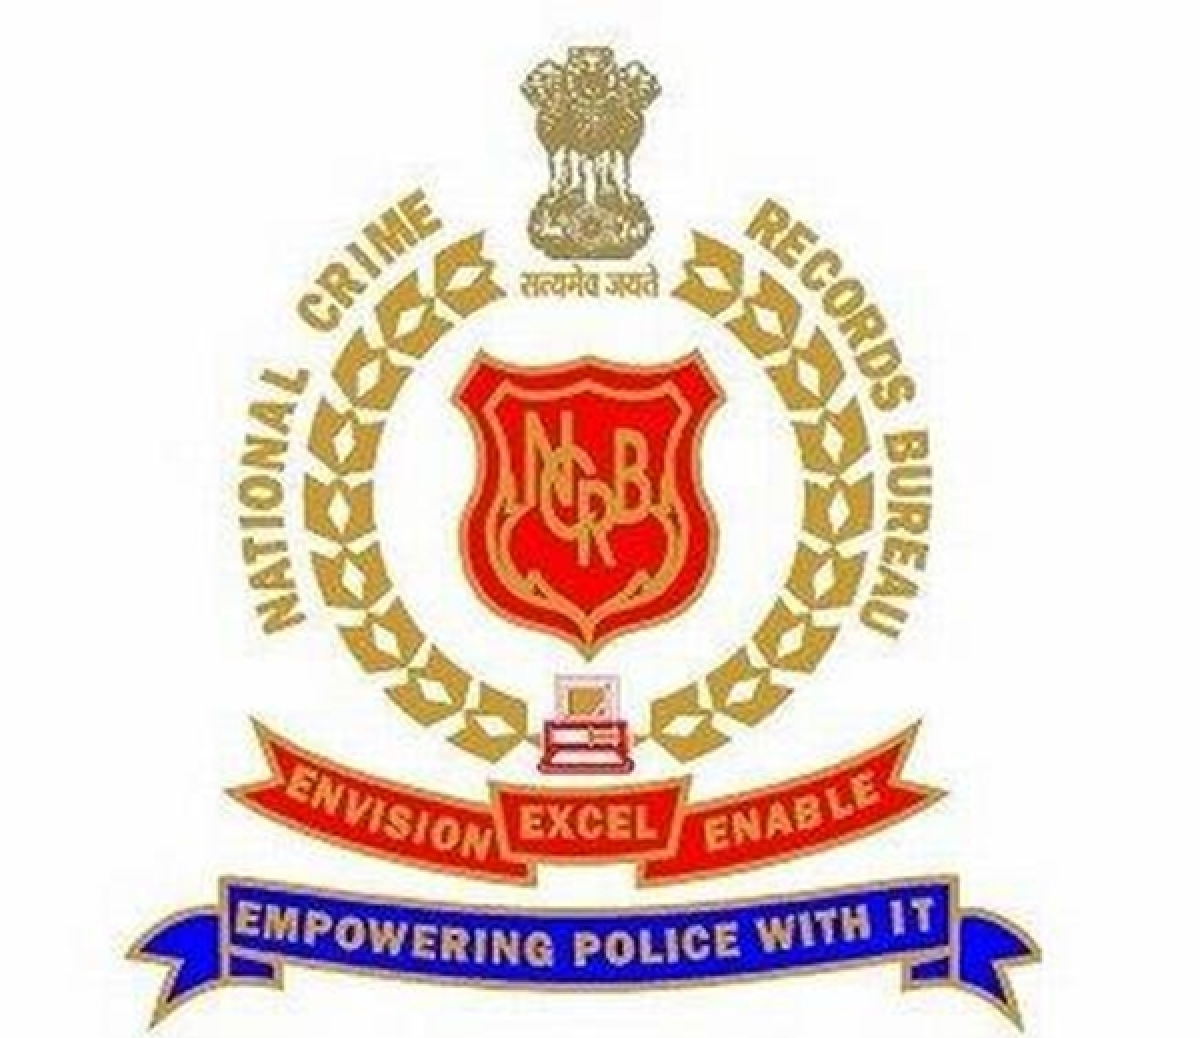 Over 50 lakh cognizable crimes registered in 2018, 1.3 pc more than 2017: NCRB